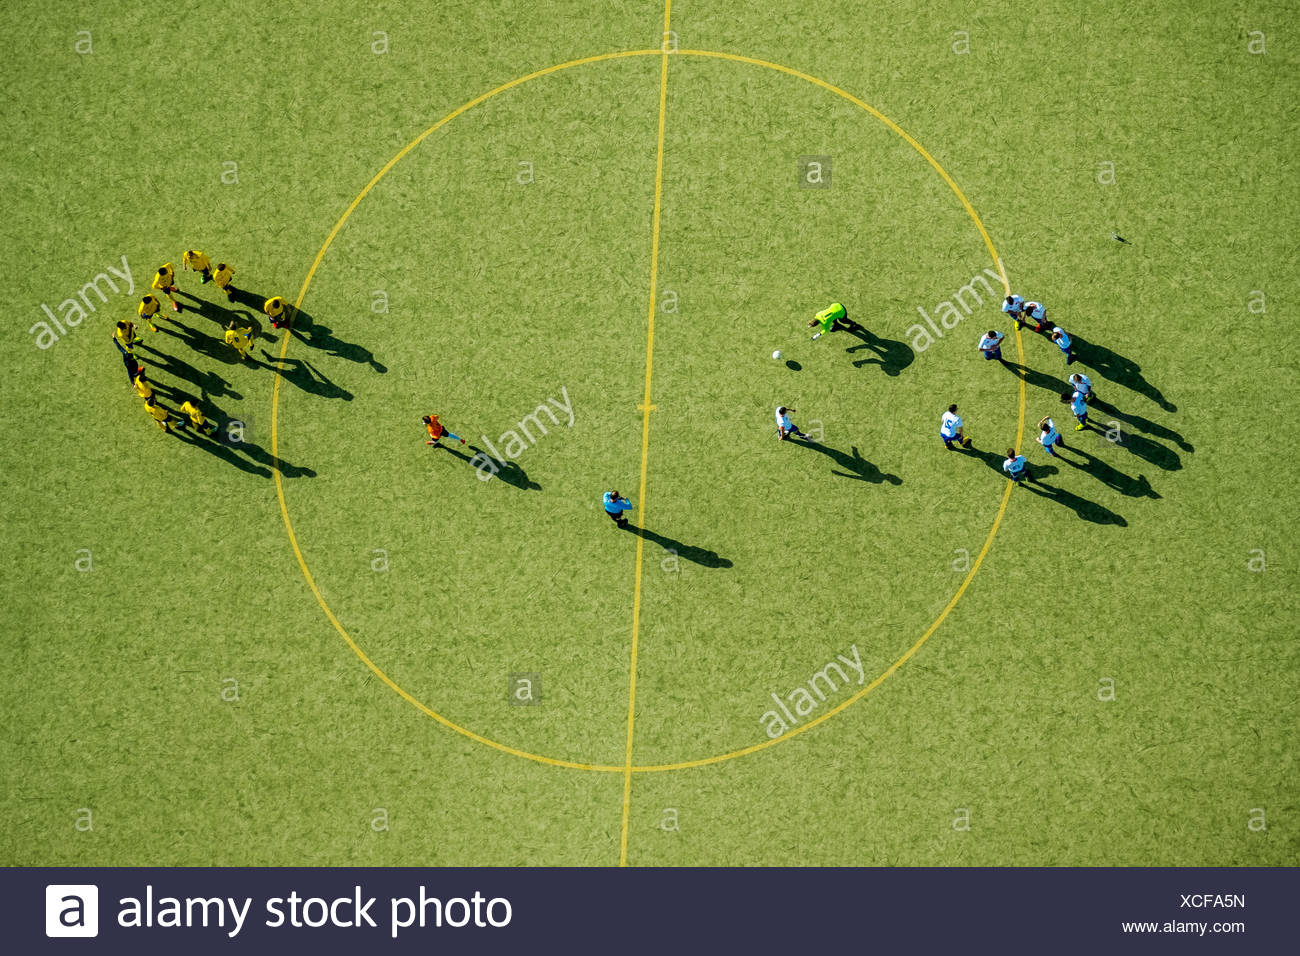 Football players at the center circle, soccer field, North Rhate-Westphalia, Germany - Stock Image